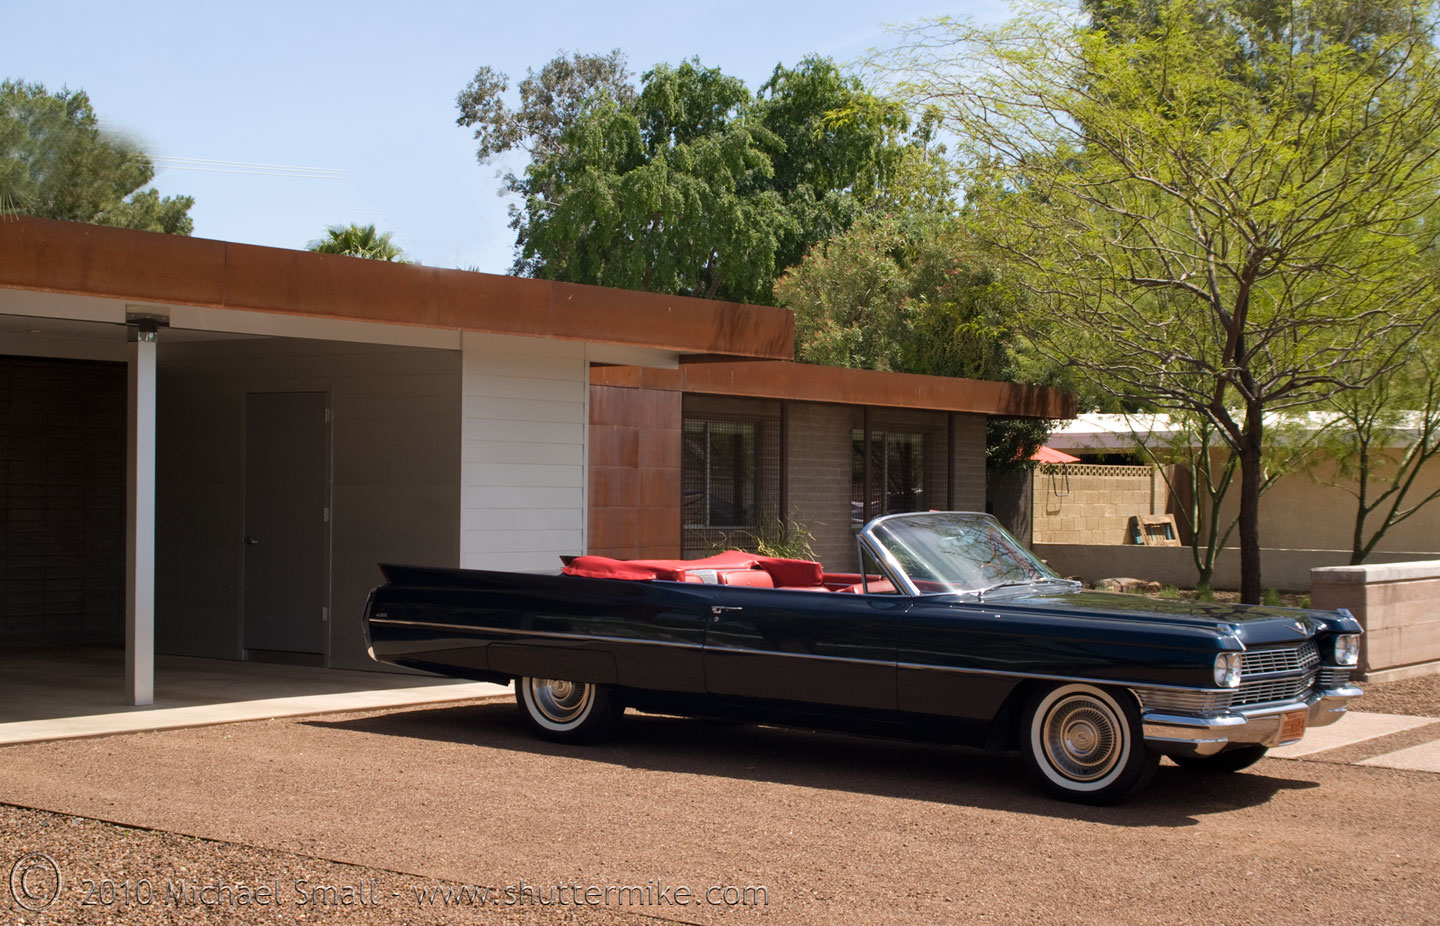 1126991 What Color Paint My Homes Exterior 3 besides Contemporary Ranch House Plans besides Tuscan Kitchen Ideas moreover Mid Century Modern Floor Plans additionally Furniture Tucson Az. on mid century modern homes tucson